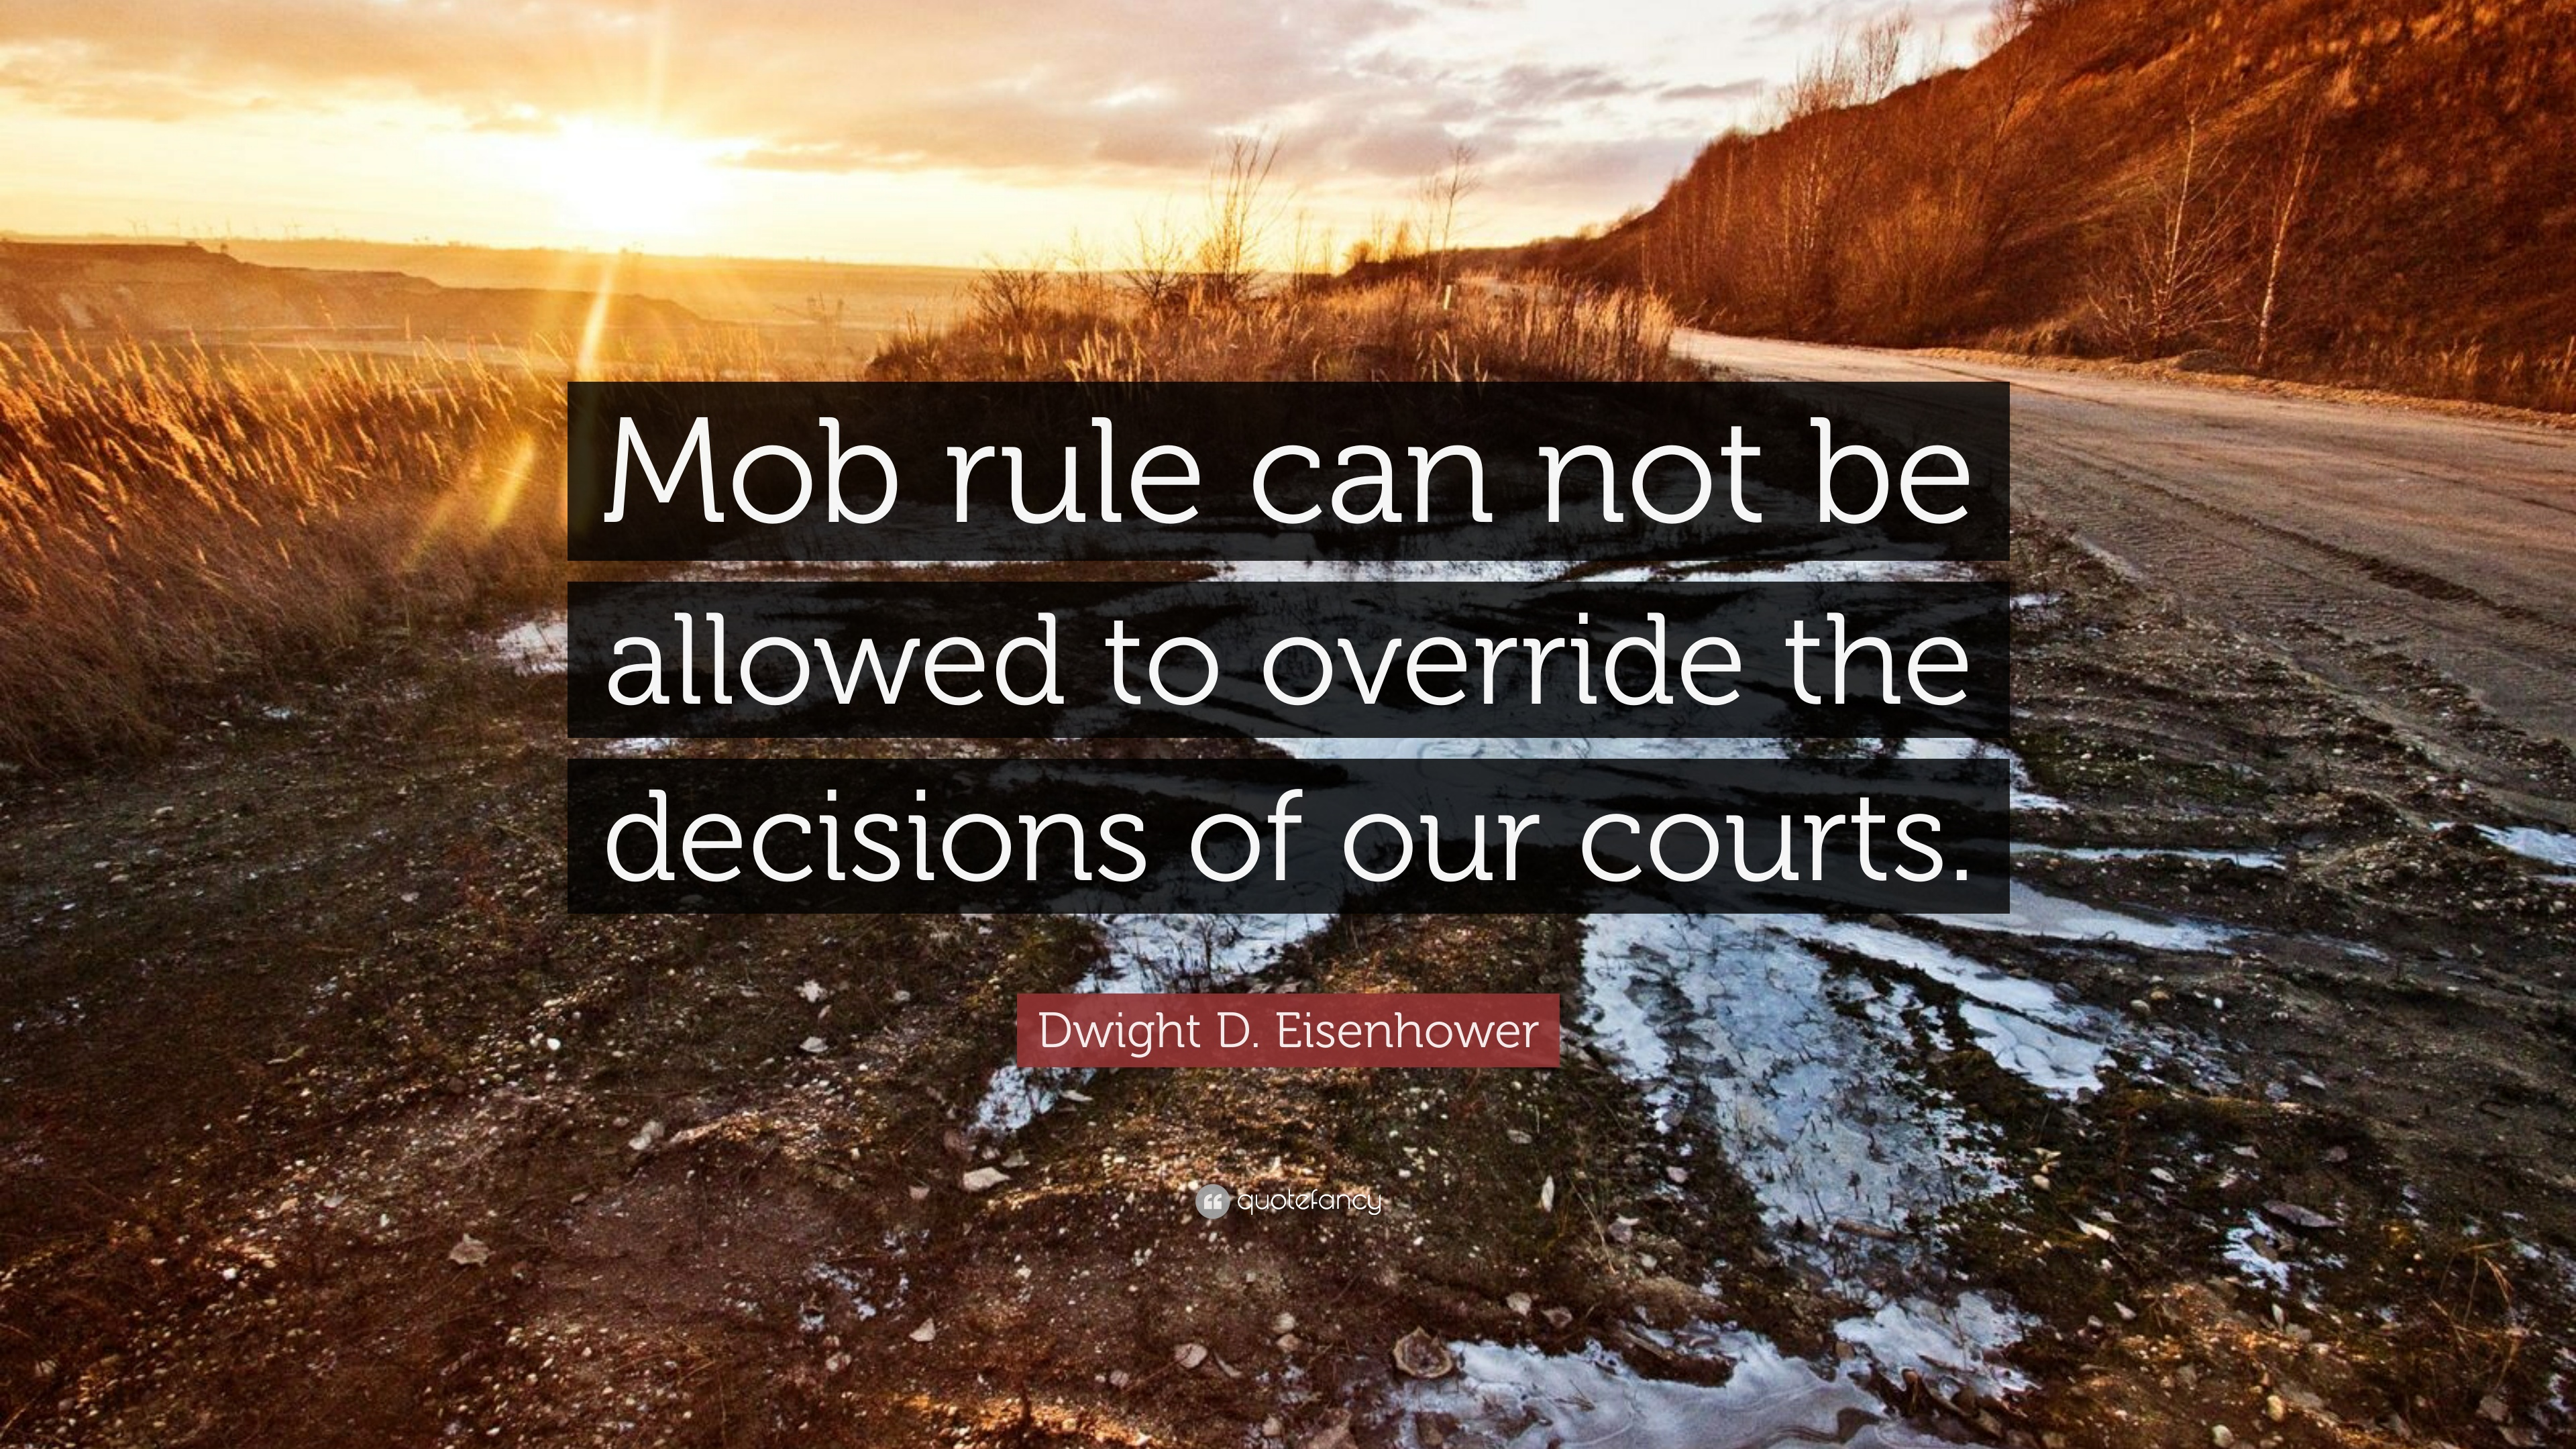 dwight d eisenhower quote mob rule can not be allowed to override the decisions of our courts. Black Bedroom Furniture Sets. Home Design Ideas